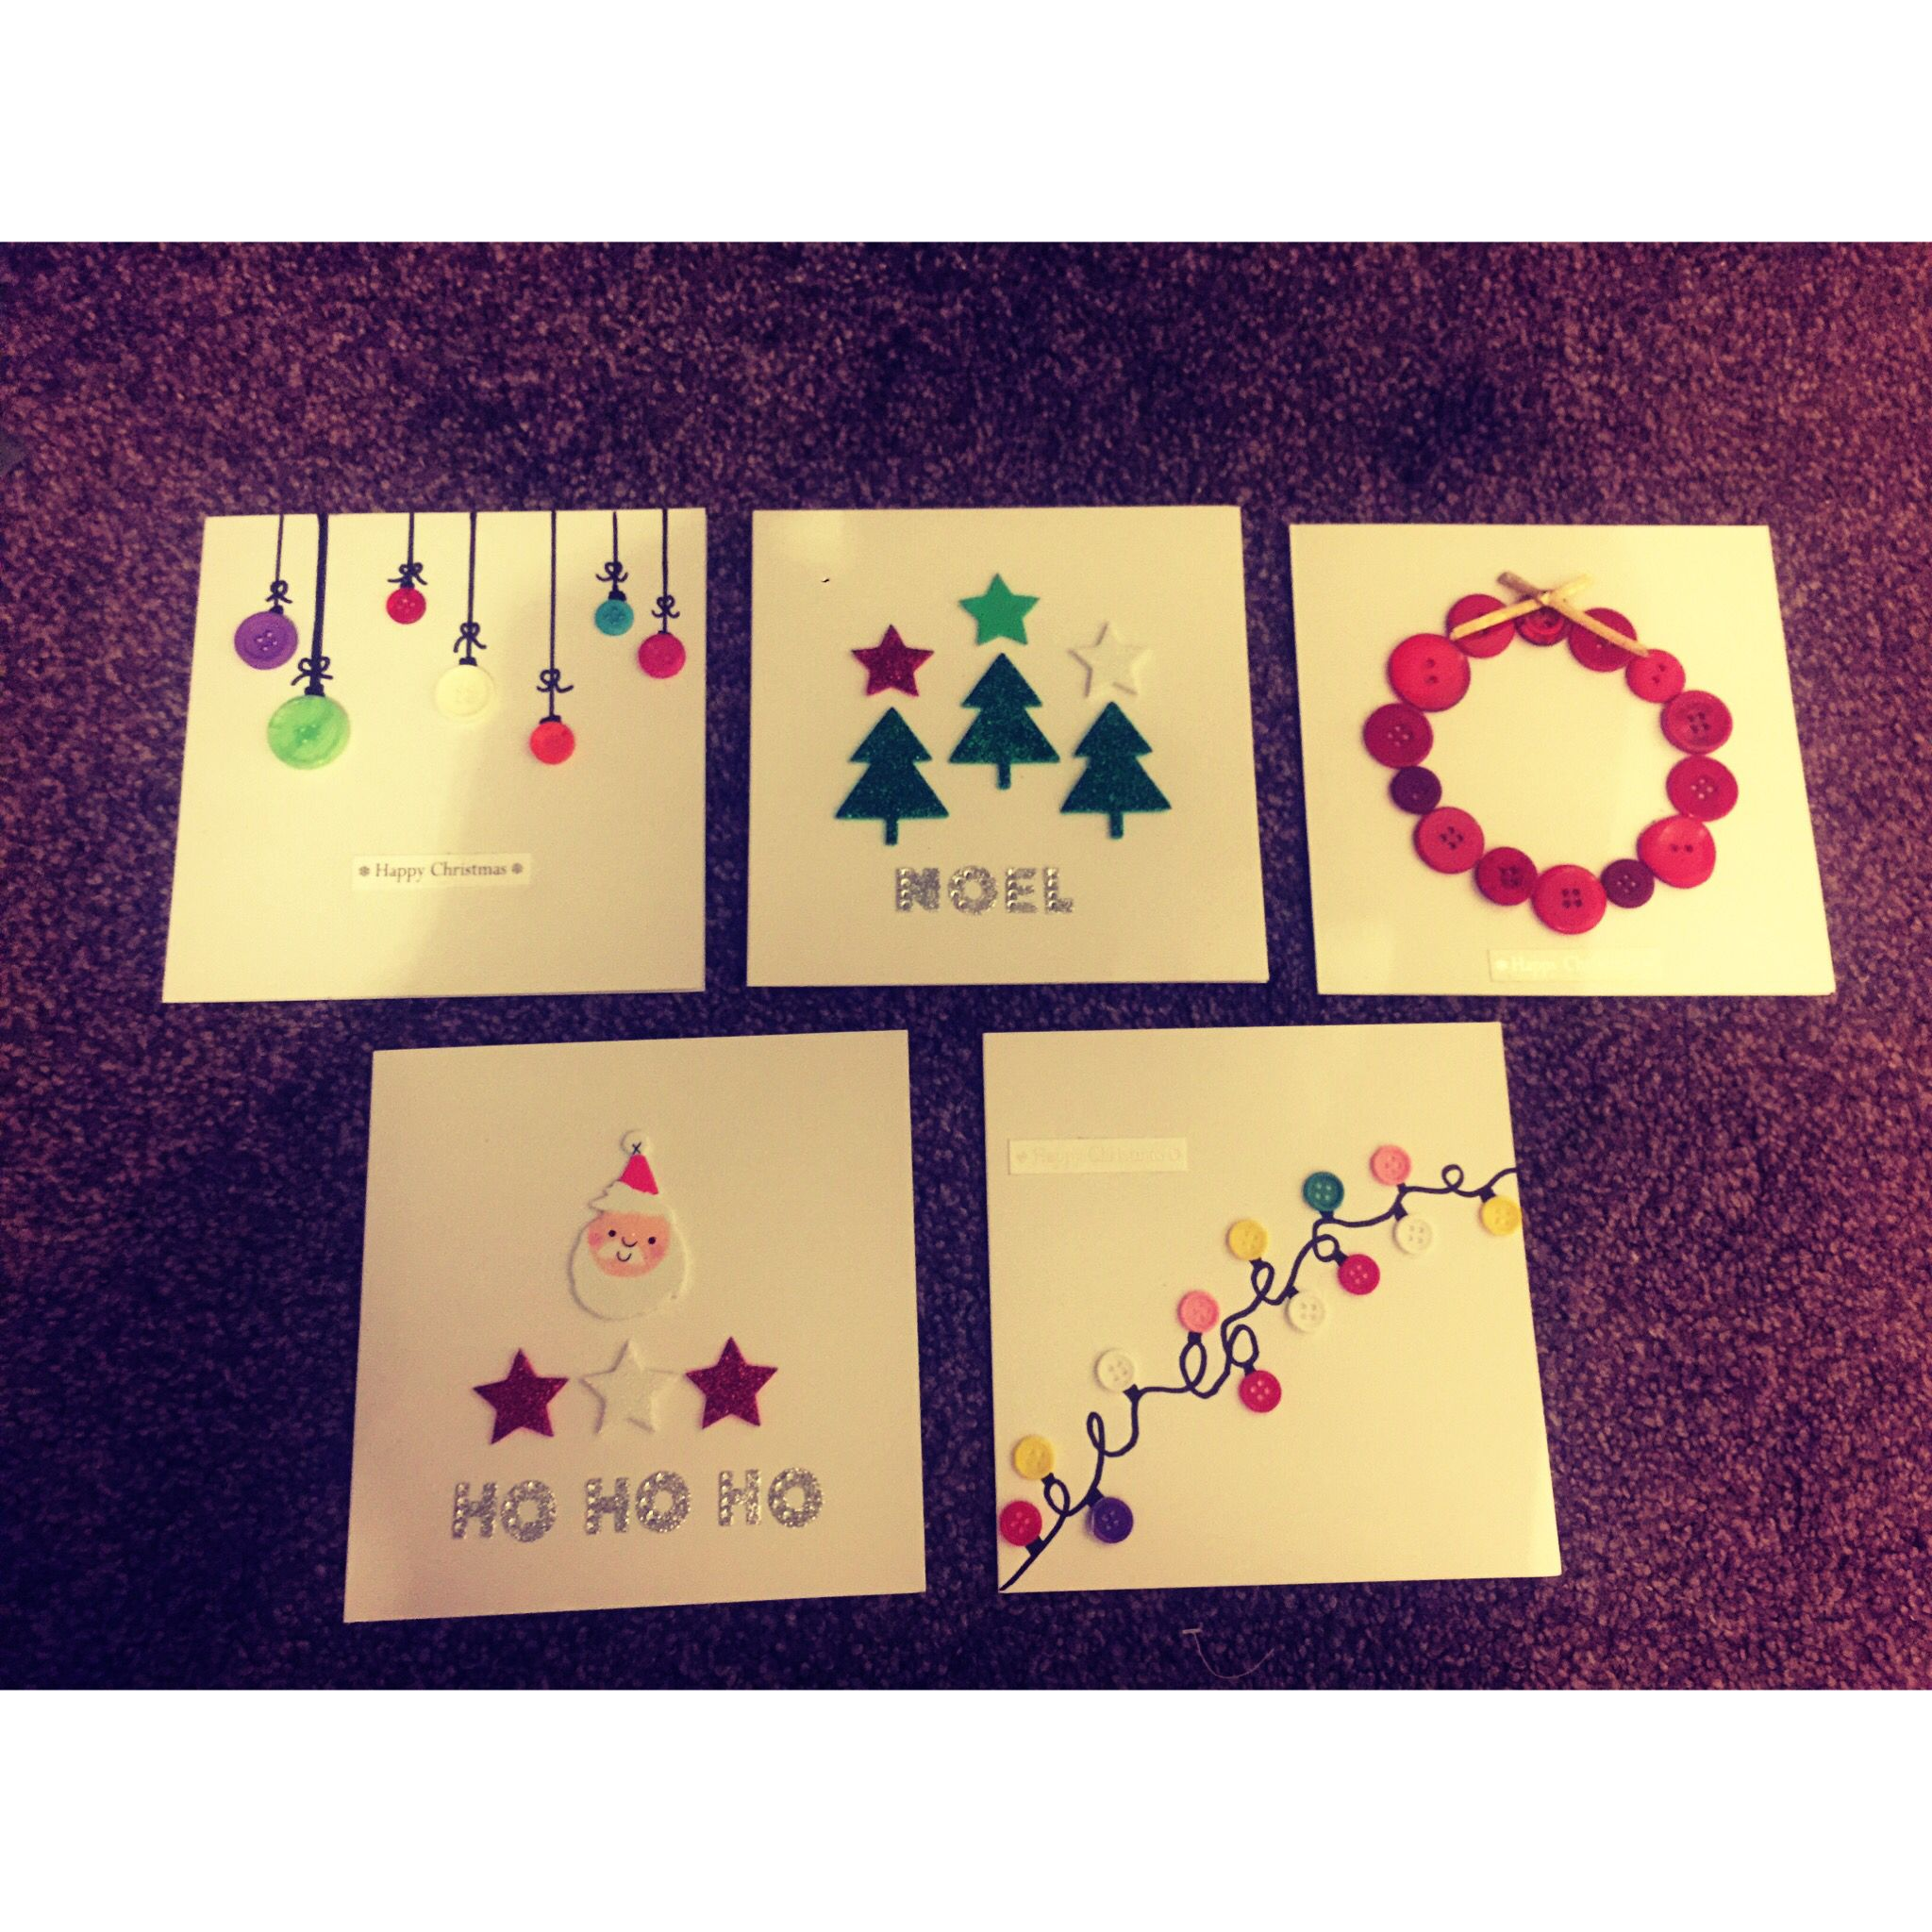 Homemade Christmas Cards Made With Buttons And Sharpie Pens